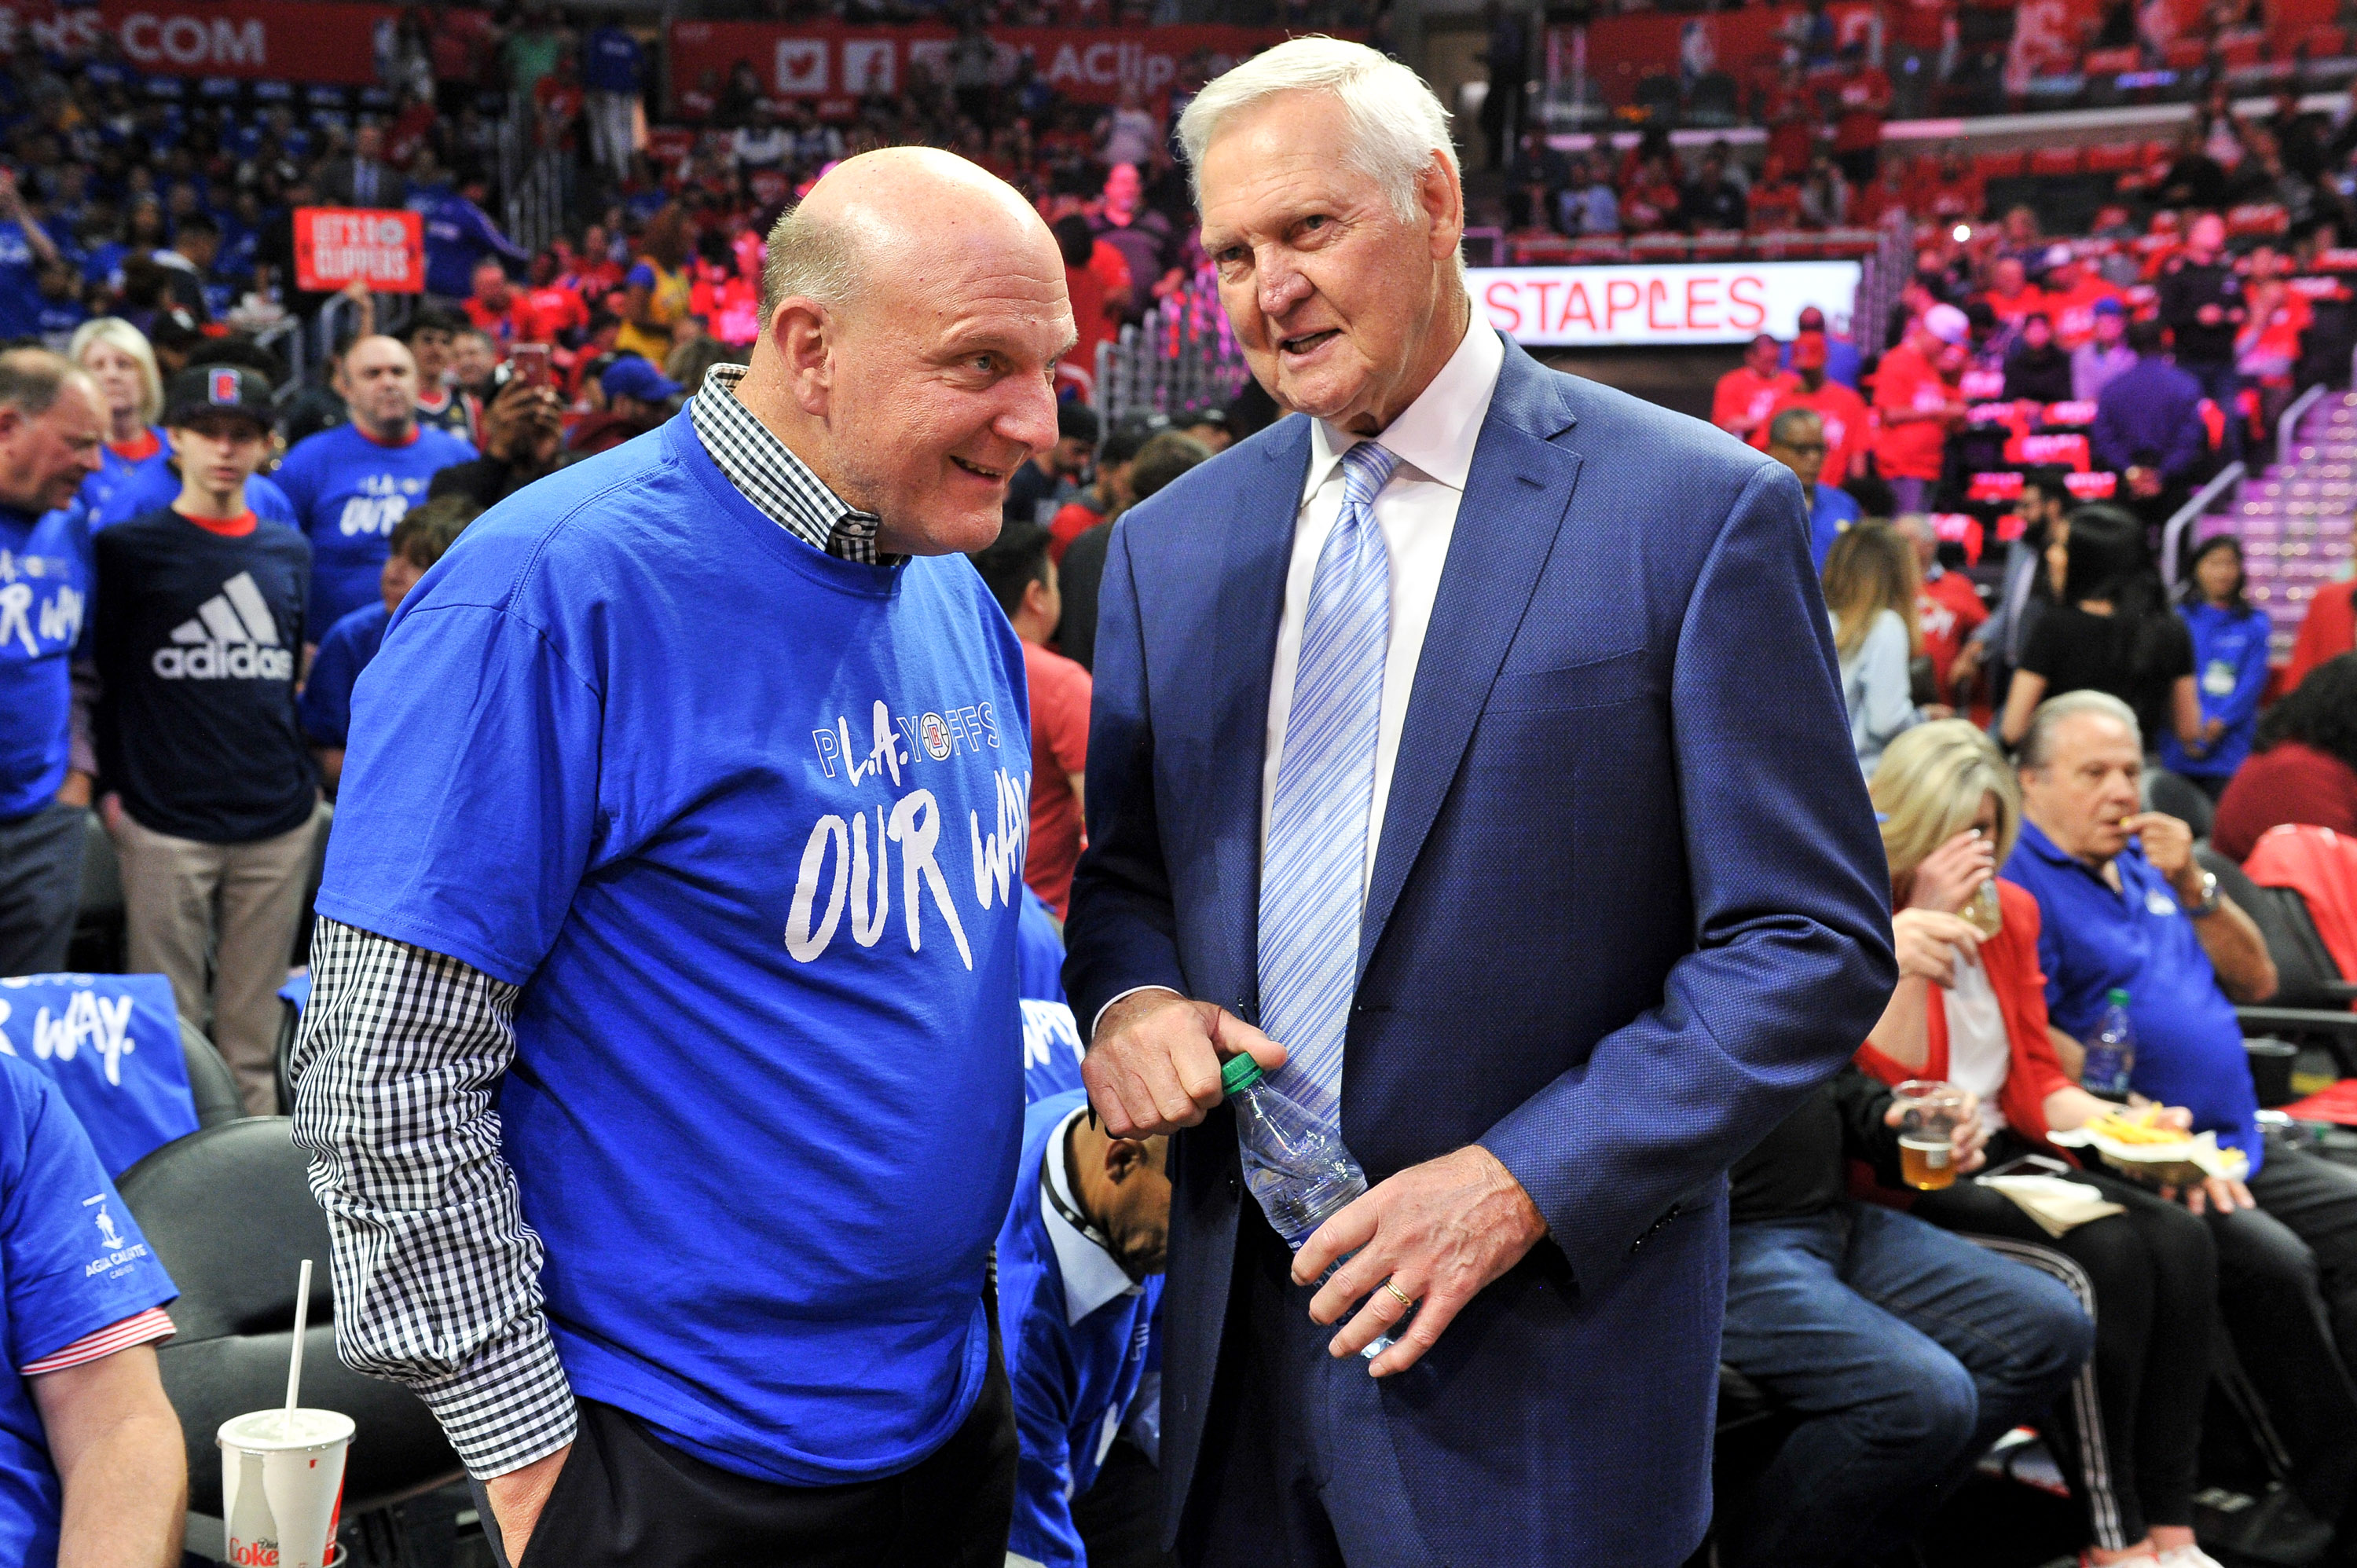 LA Clippers owner Steve Ballmer